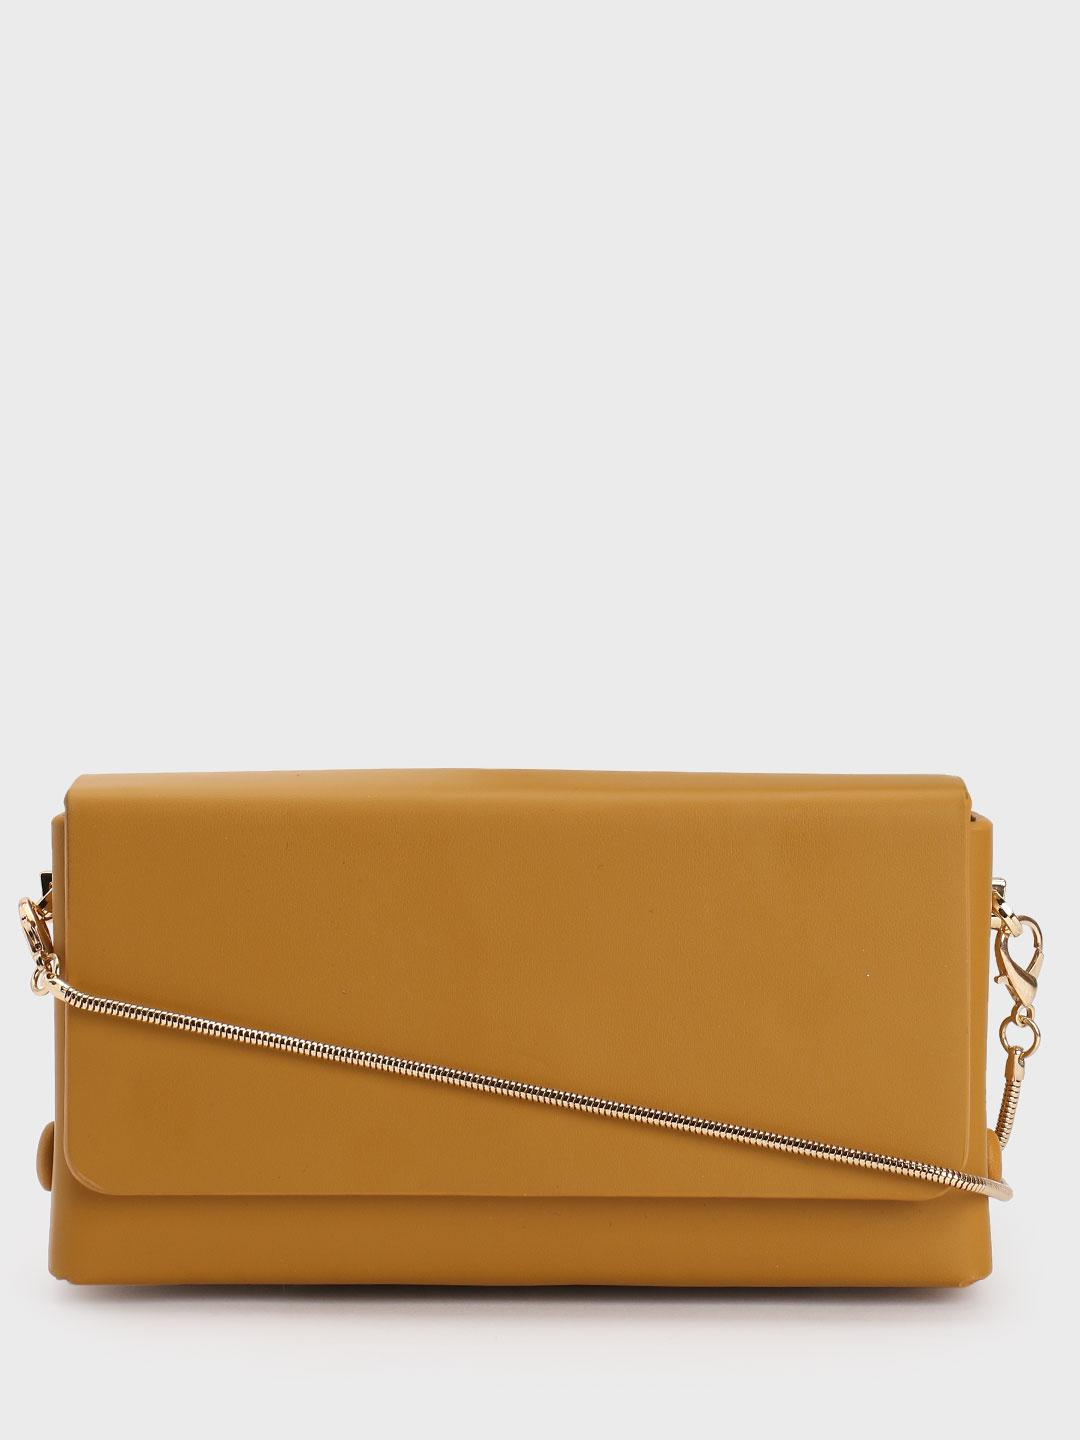 Origami Lily Mustard Rectangular Structured Sling Bag 1